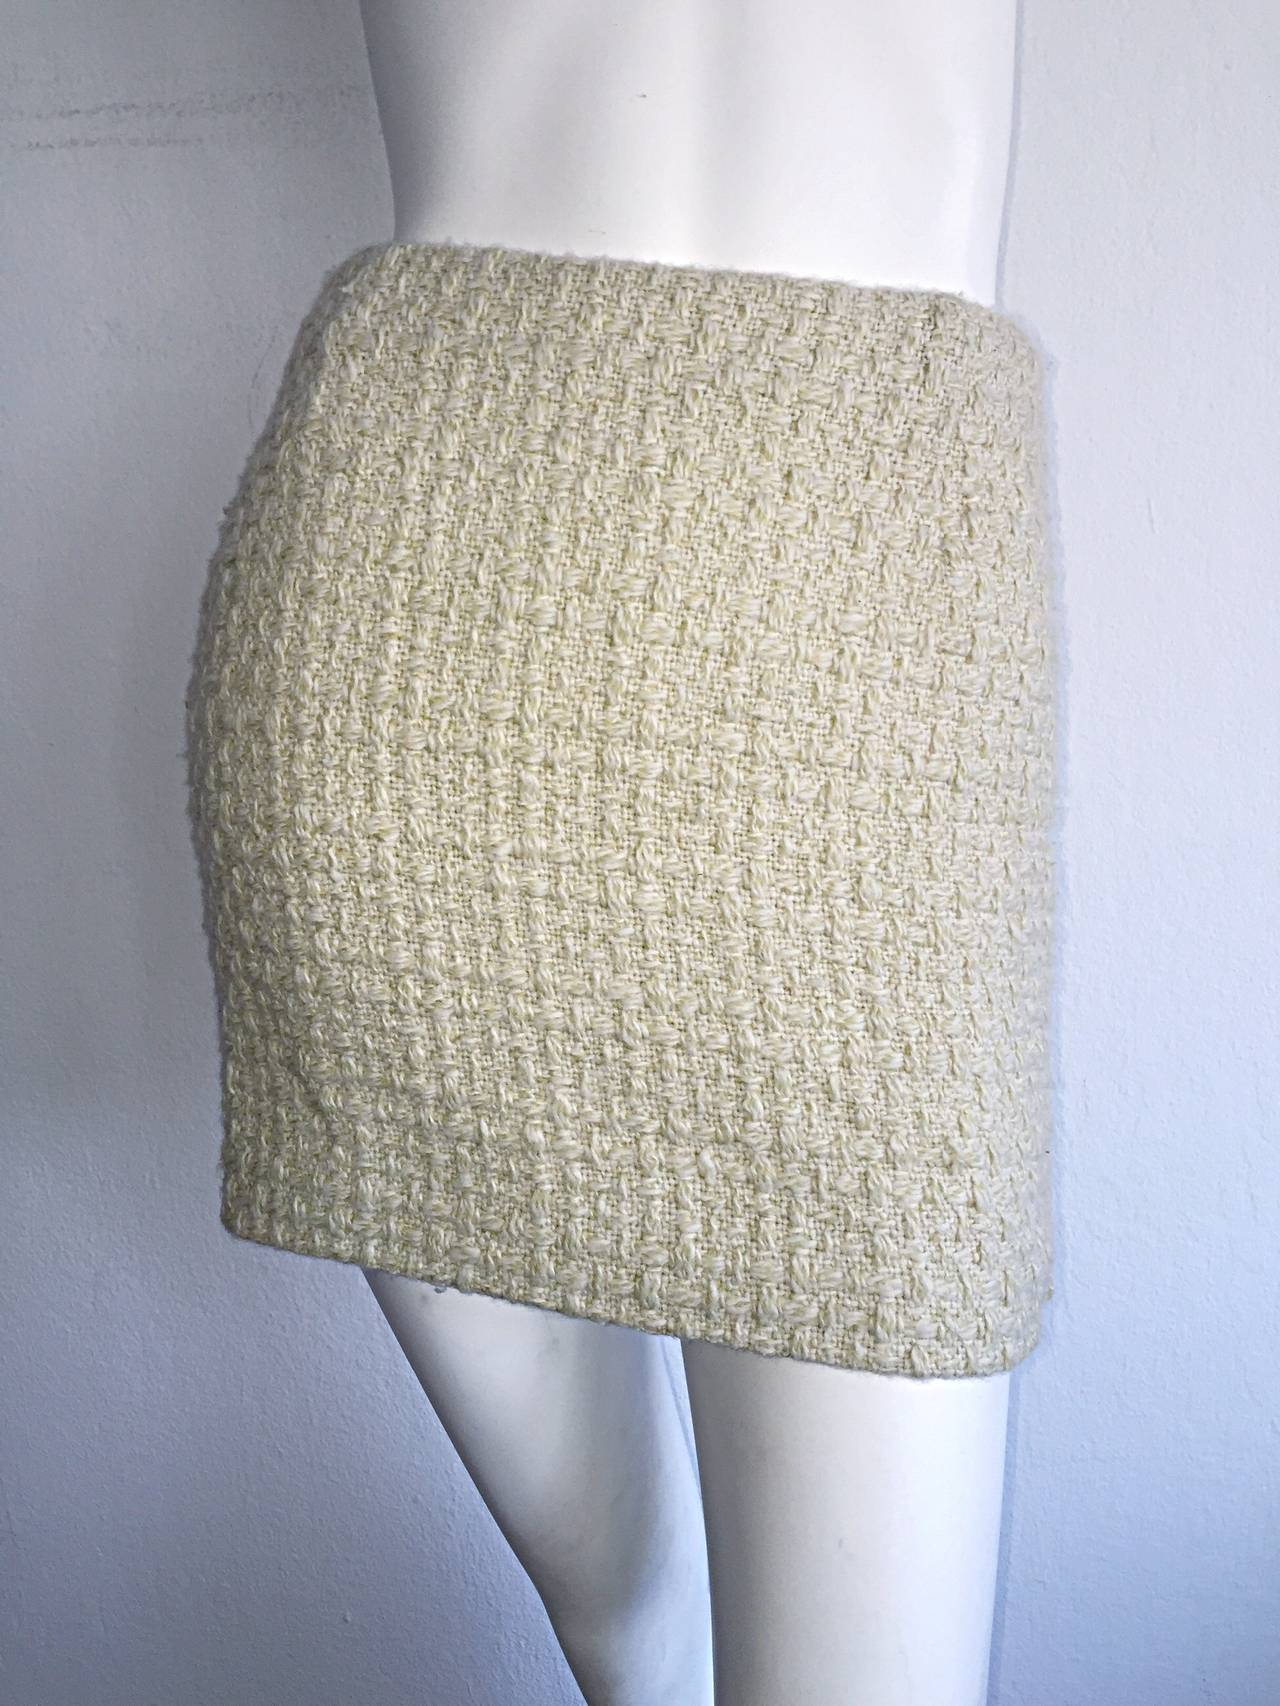 Sexy 1990s Vintage Gianni Versace Couture Ivory Off - White Cashmere Mini Skirt 5